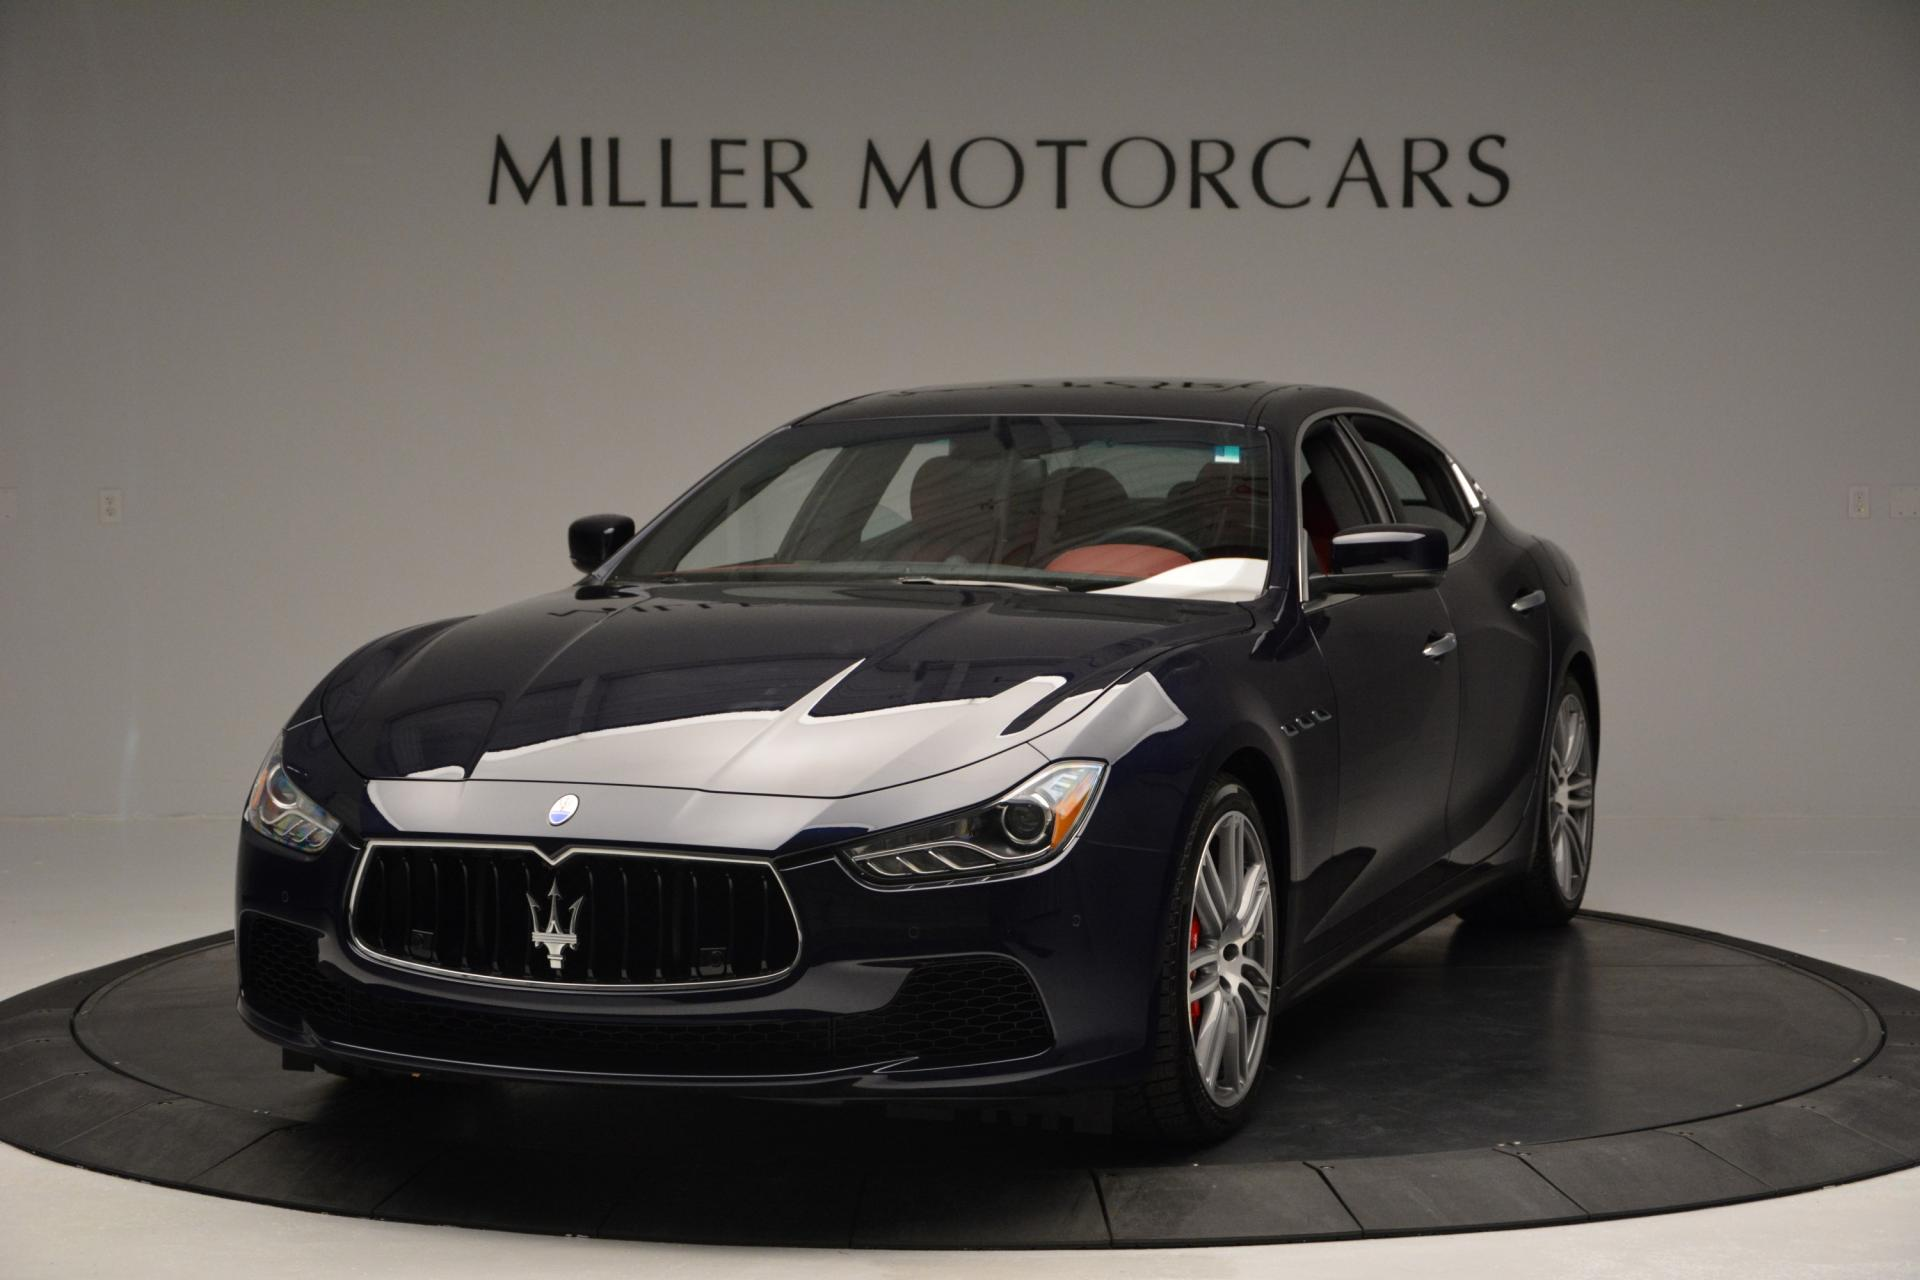 New 2016 Maserati Ghibli S Q4 for sale Sold at Alfa Romeo of Greenwich in Greenwich CT 06830 1